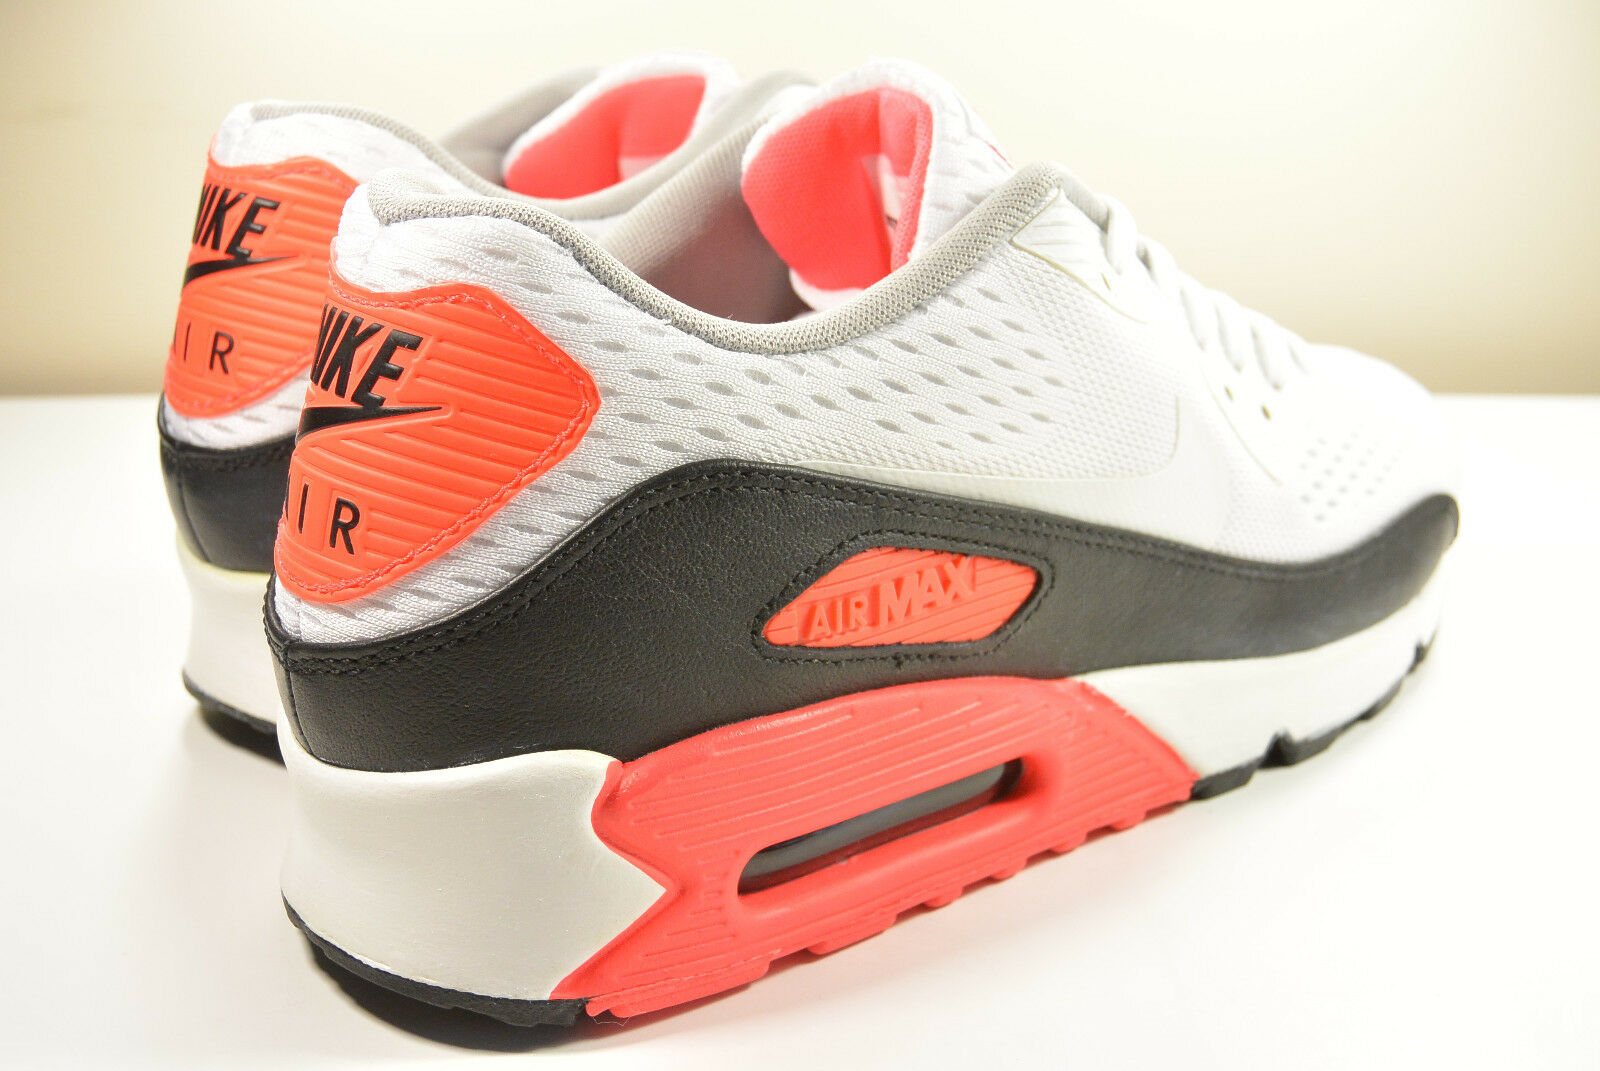 DS NIKE 2012 AIR MAX 90 EM OG INFRARED 11.5 ATMOS SAFARI LEOPARD VINTAGE 1 95